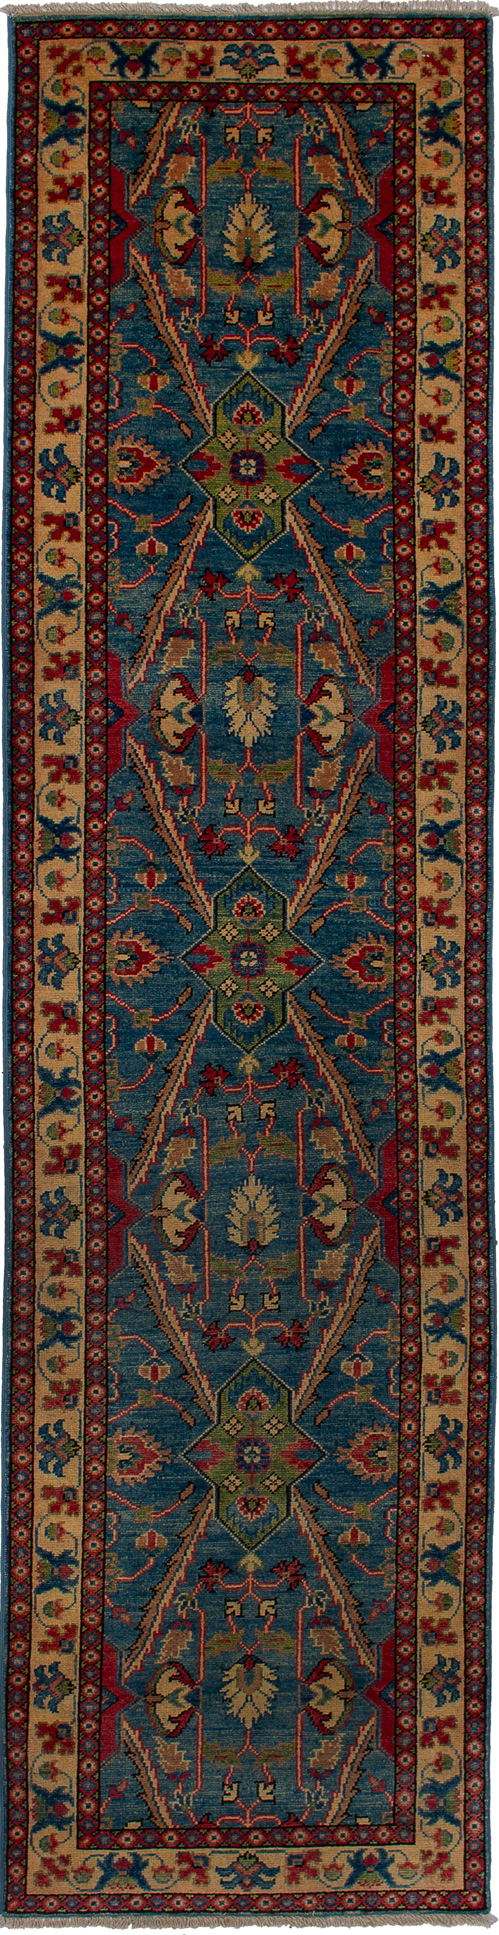 """Hand-knotted Finest Gazni Blue Wool Rug 2'5"""" x 9'9"""" Size: 2'5"""" x 9'9"""""""